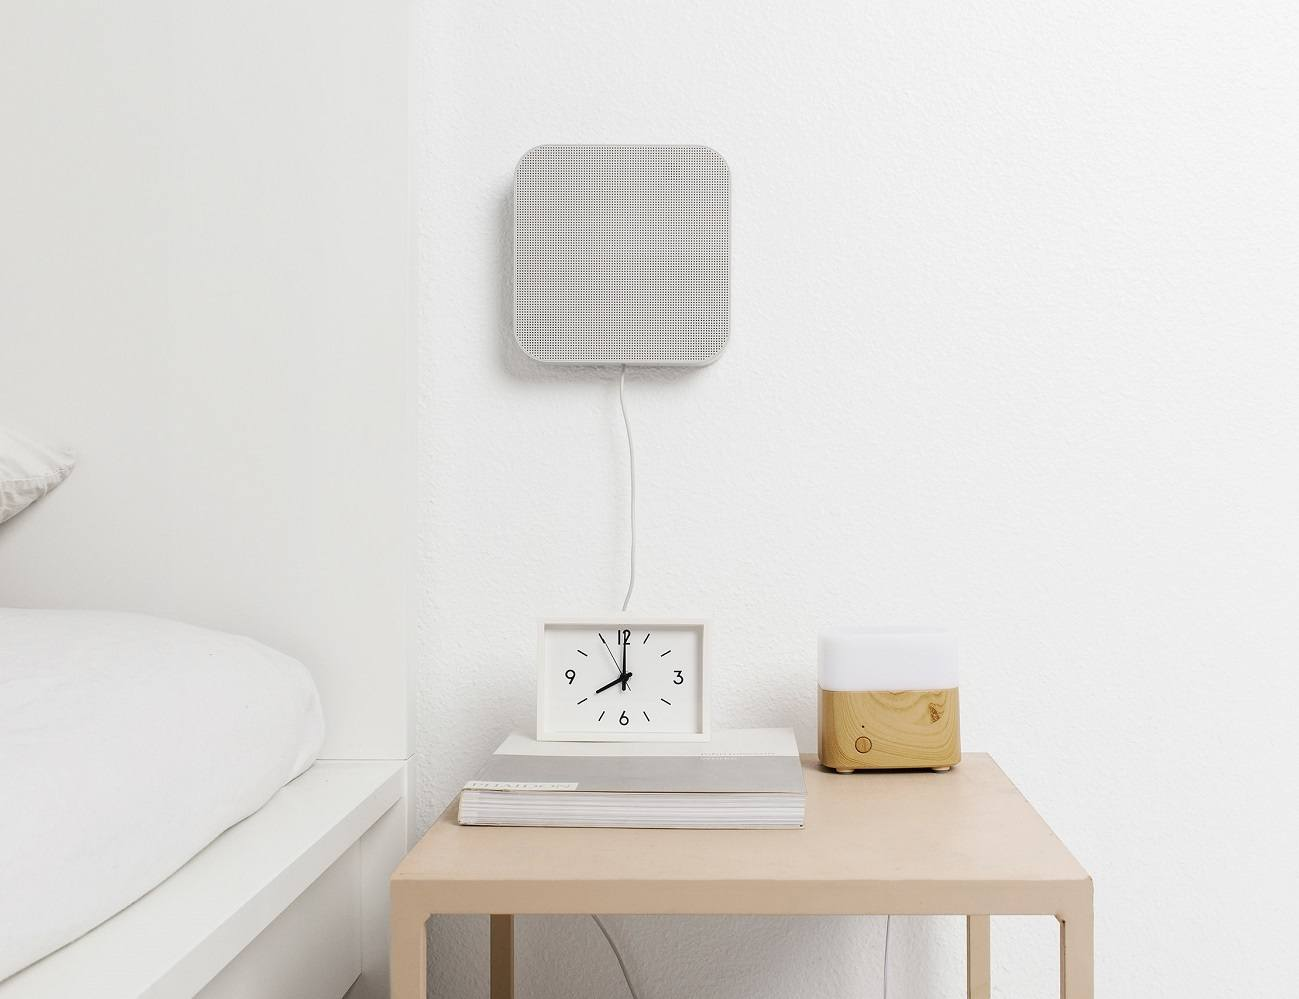 Muji Bluetooth Wall Speaker